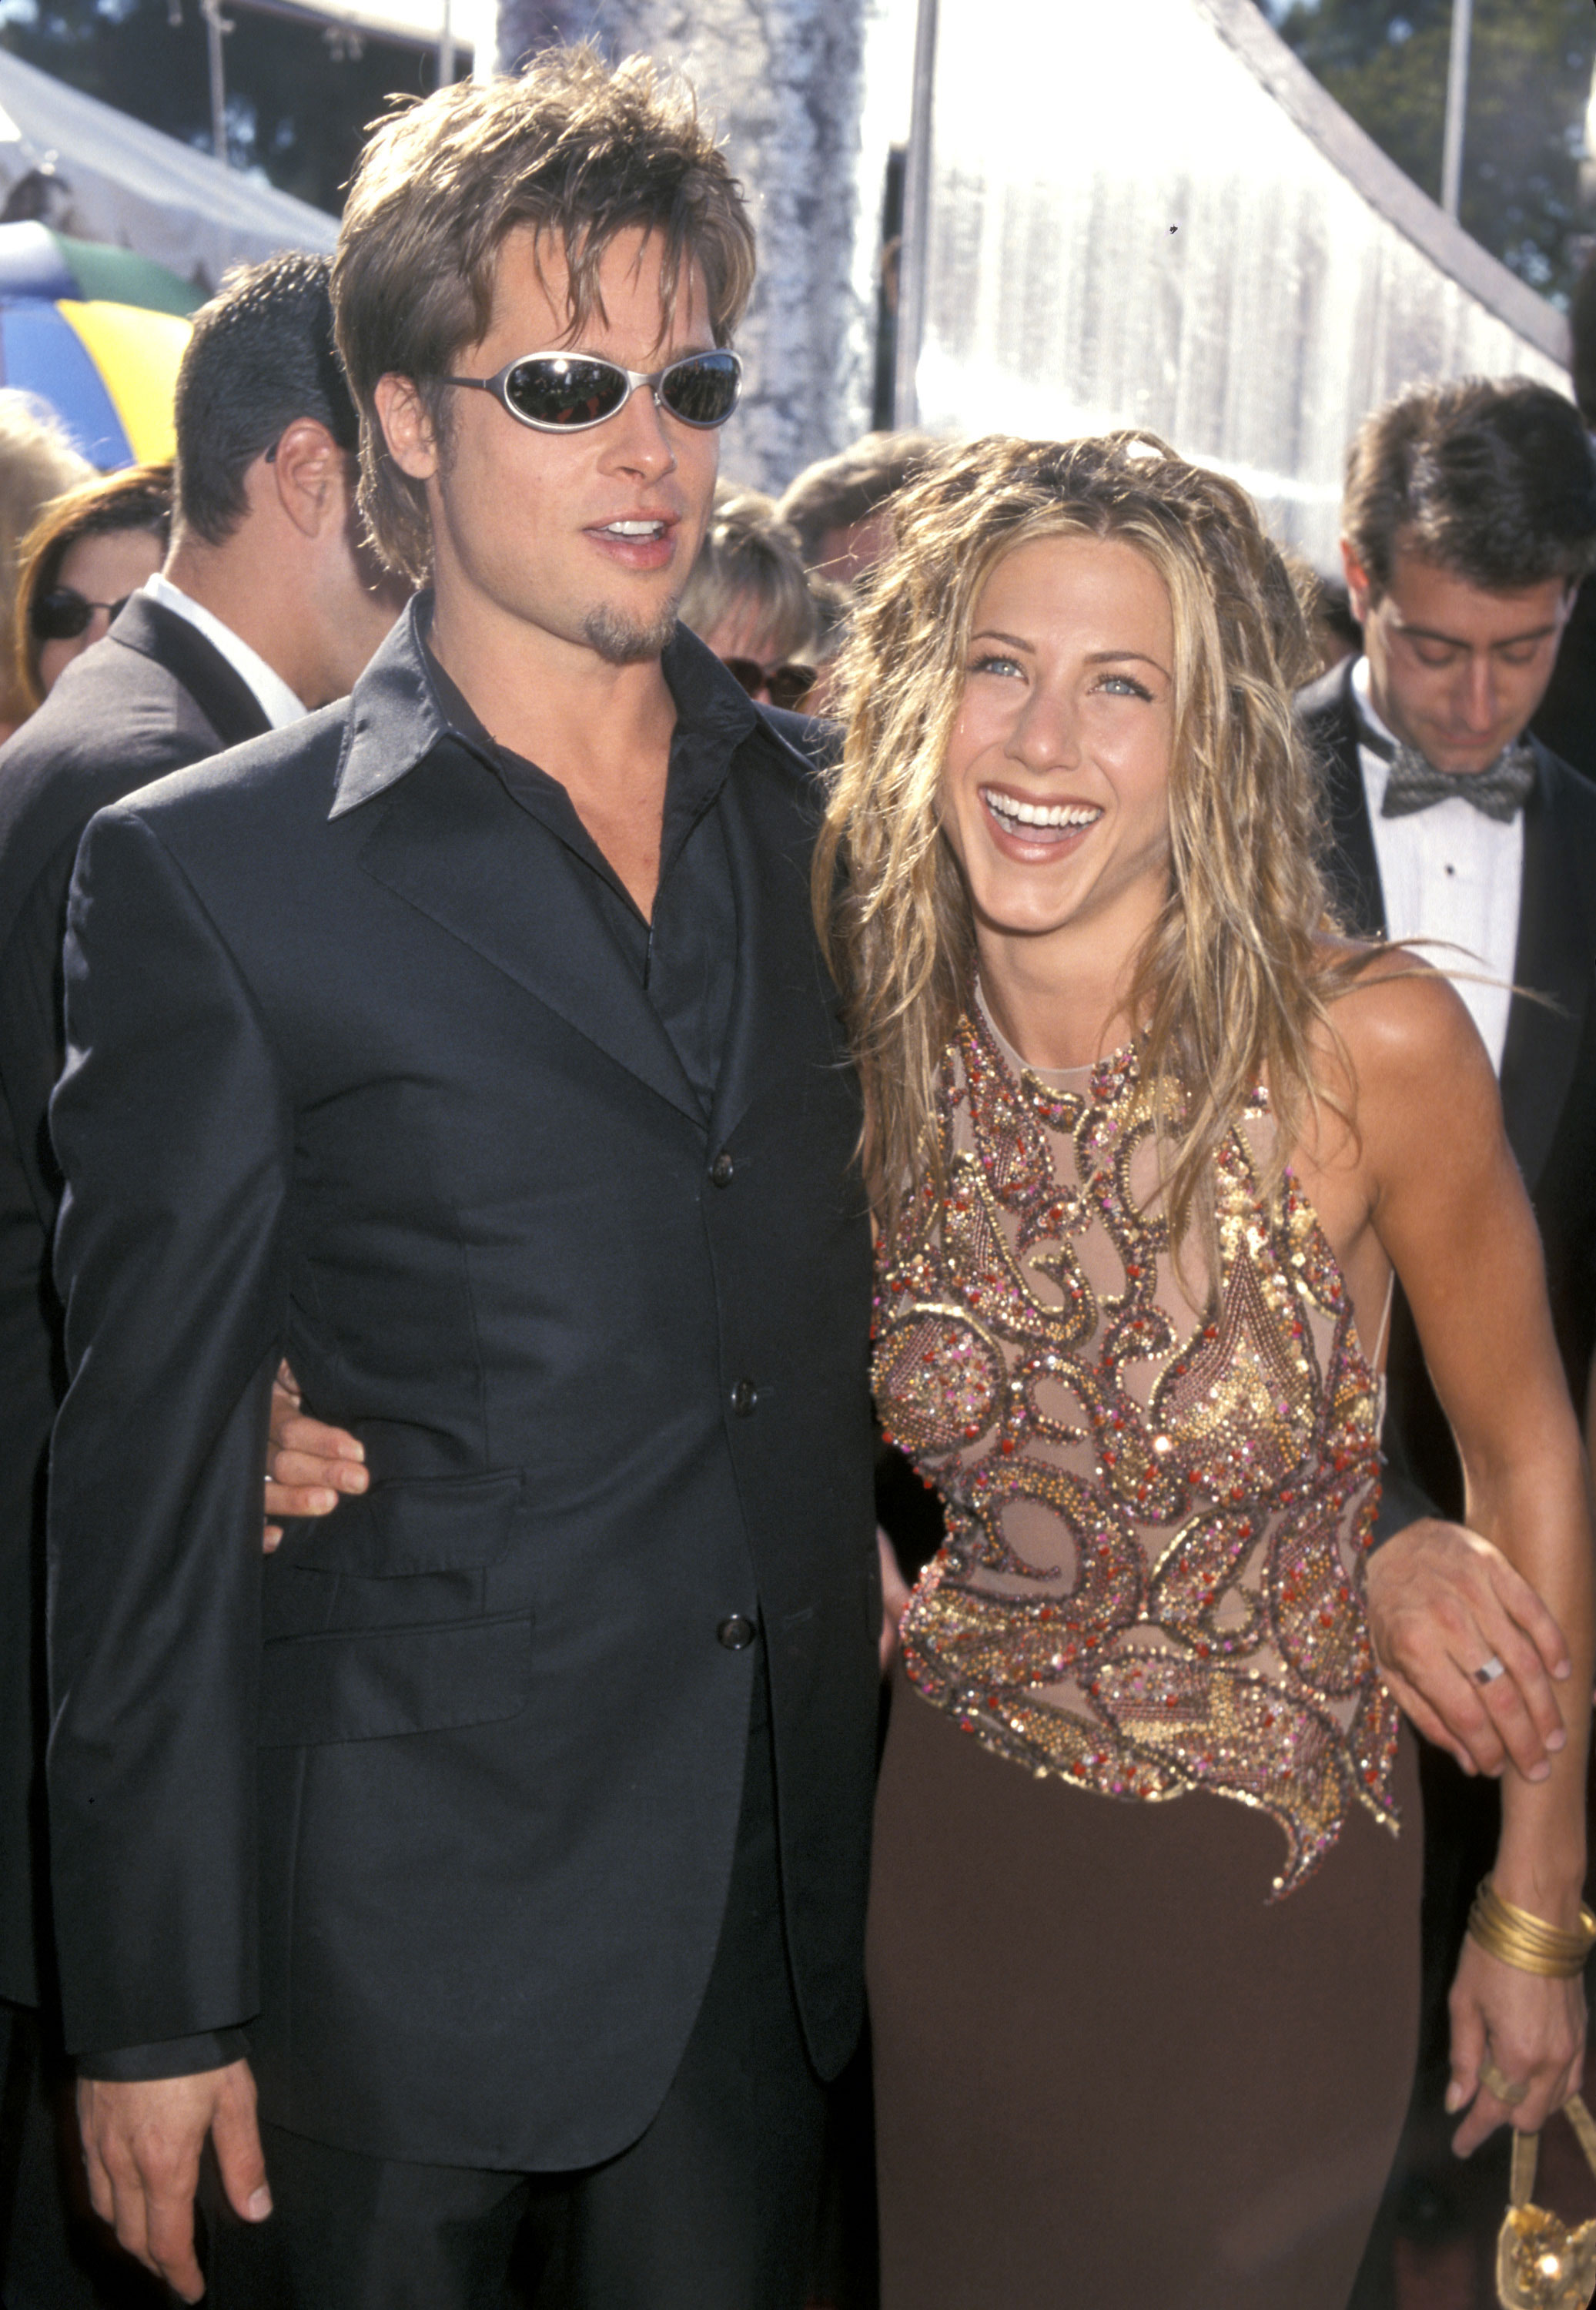 Brad Pitt and Jennifer Aniston Relationship Timeline - The power couple iconically made their debut on red carpet for the 51st Primetime Emmy Awards. Aniston's series, Friends , was up for Outstanding Comedy Series at the time, but lost to Ally McBeal .